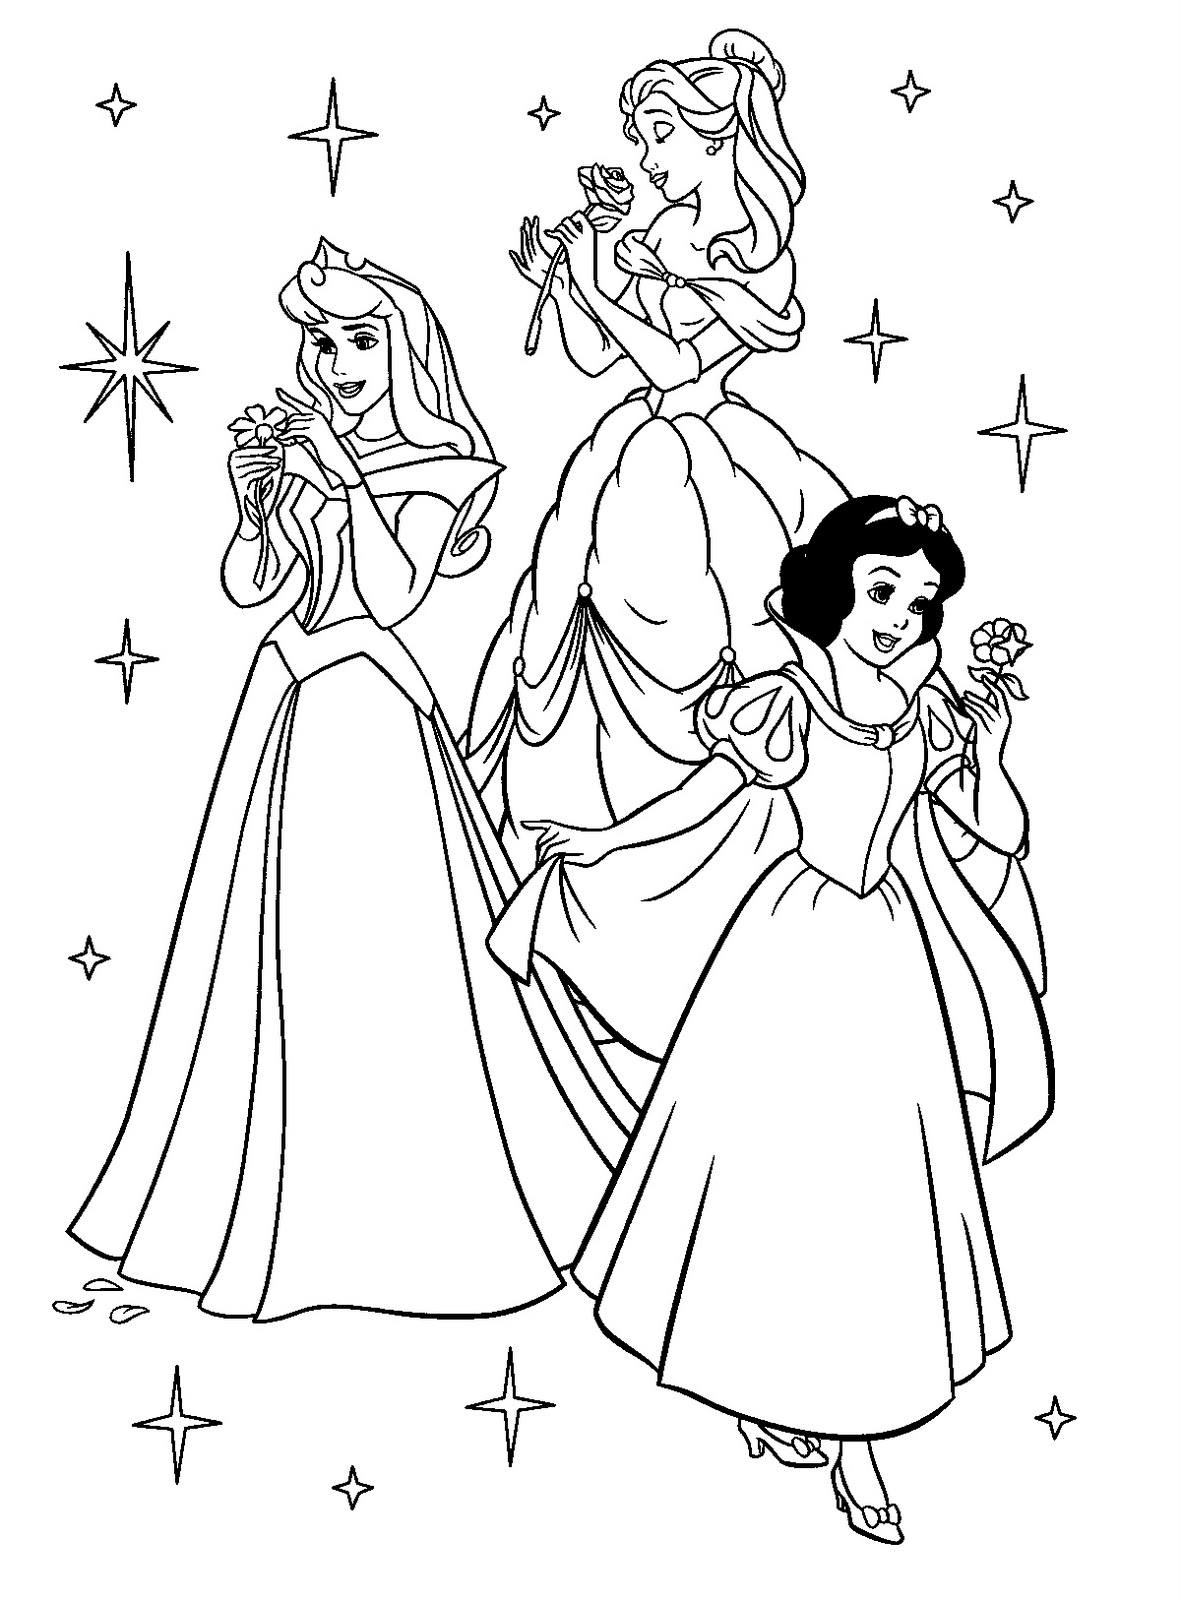 Disney Princess Coloring Pages on Palace Pets Clip Art